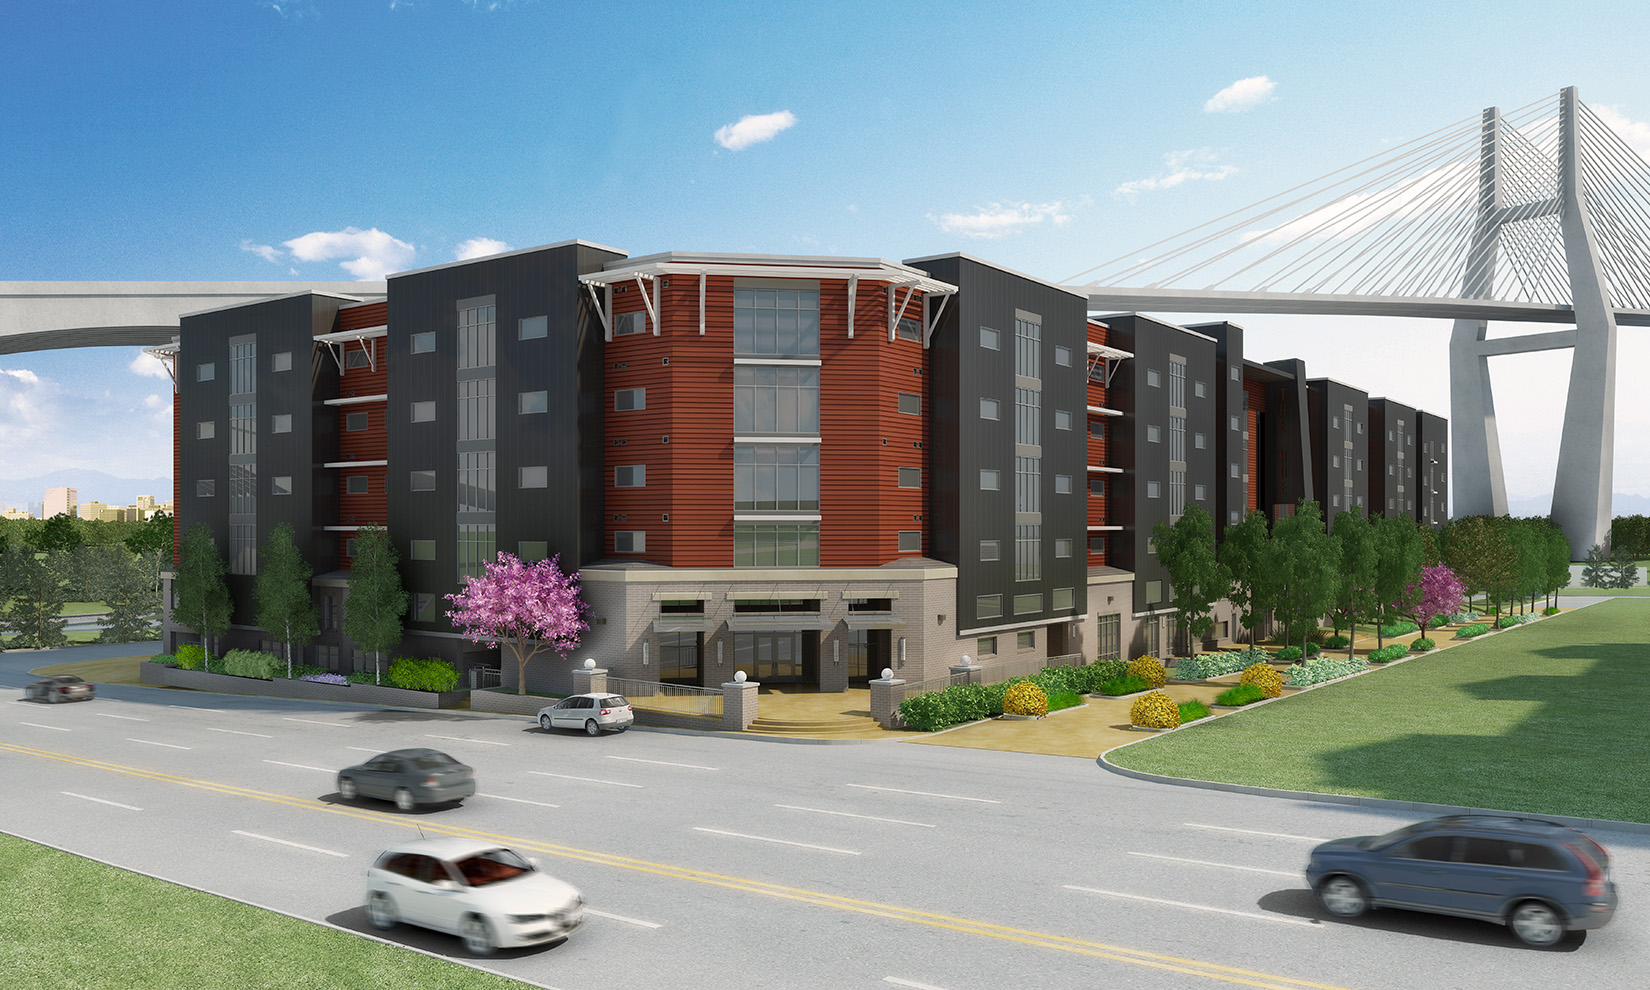 Urban Off Campus Student Housing Development Will Add 446 Beds To Savannah For Scad Students